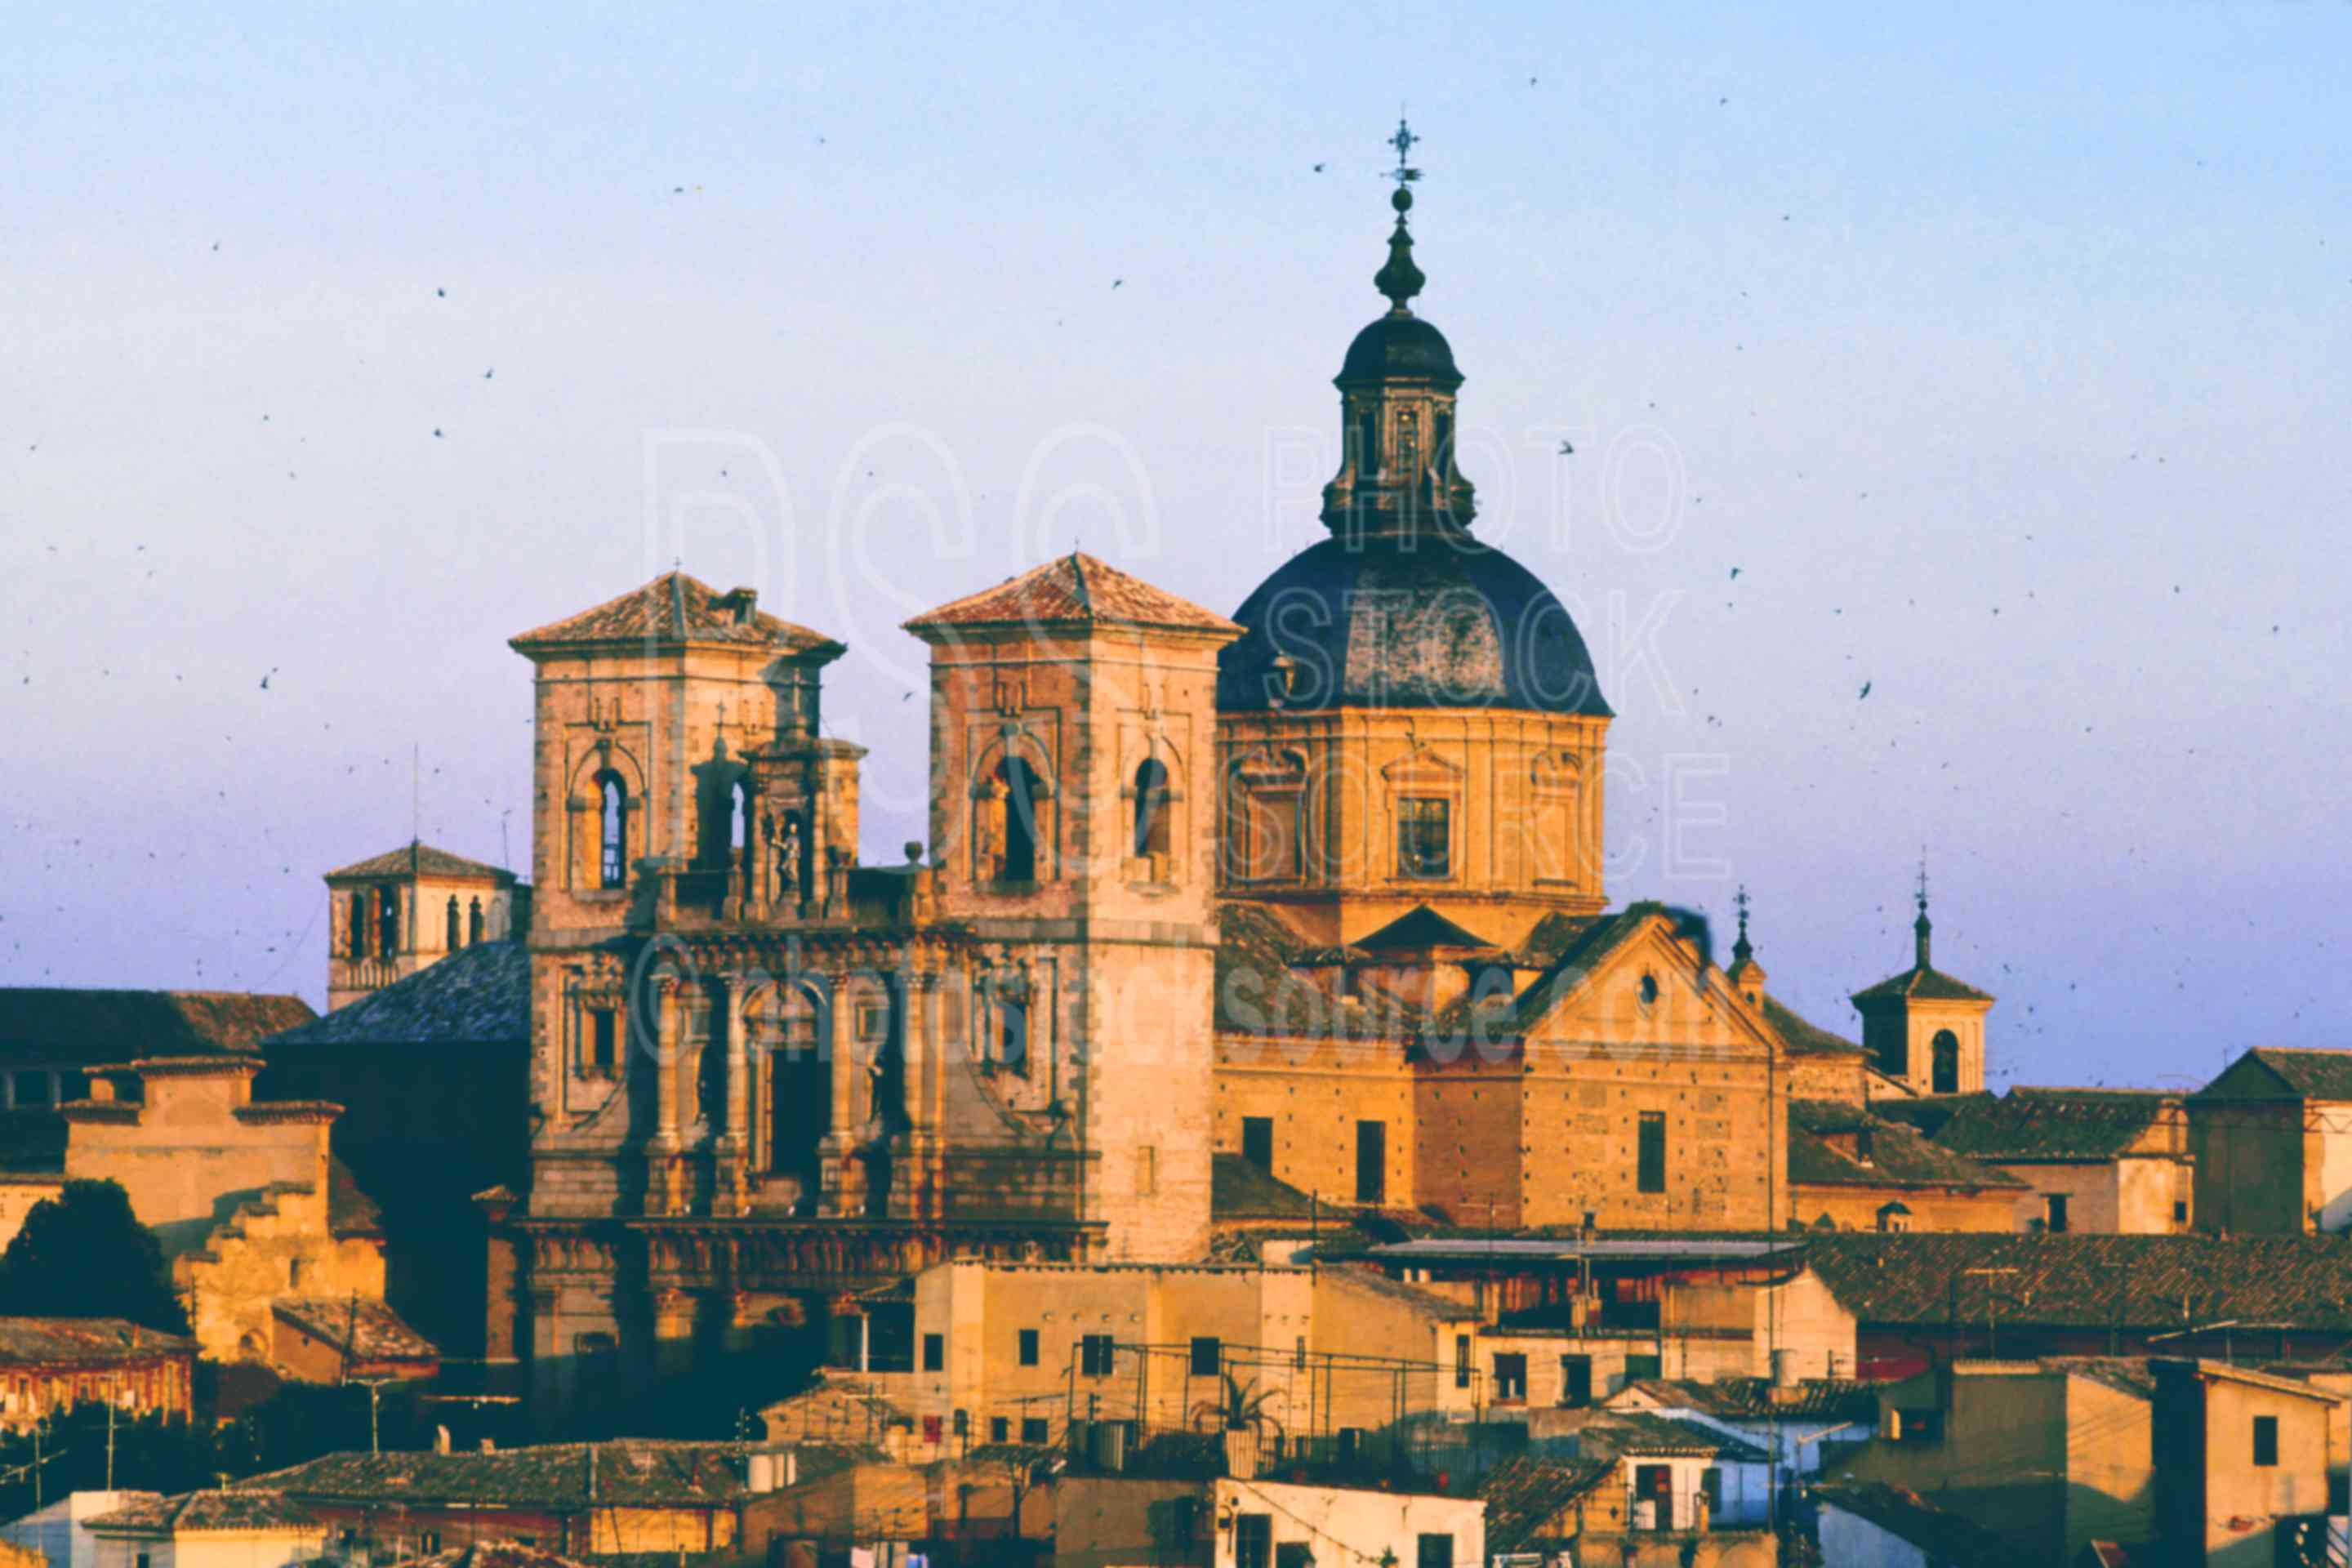 Cathedral,church,europe,sunrise,architecture,churches